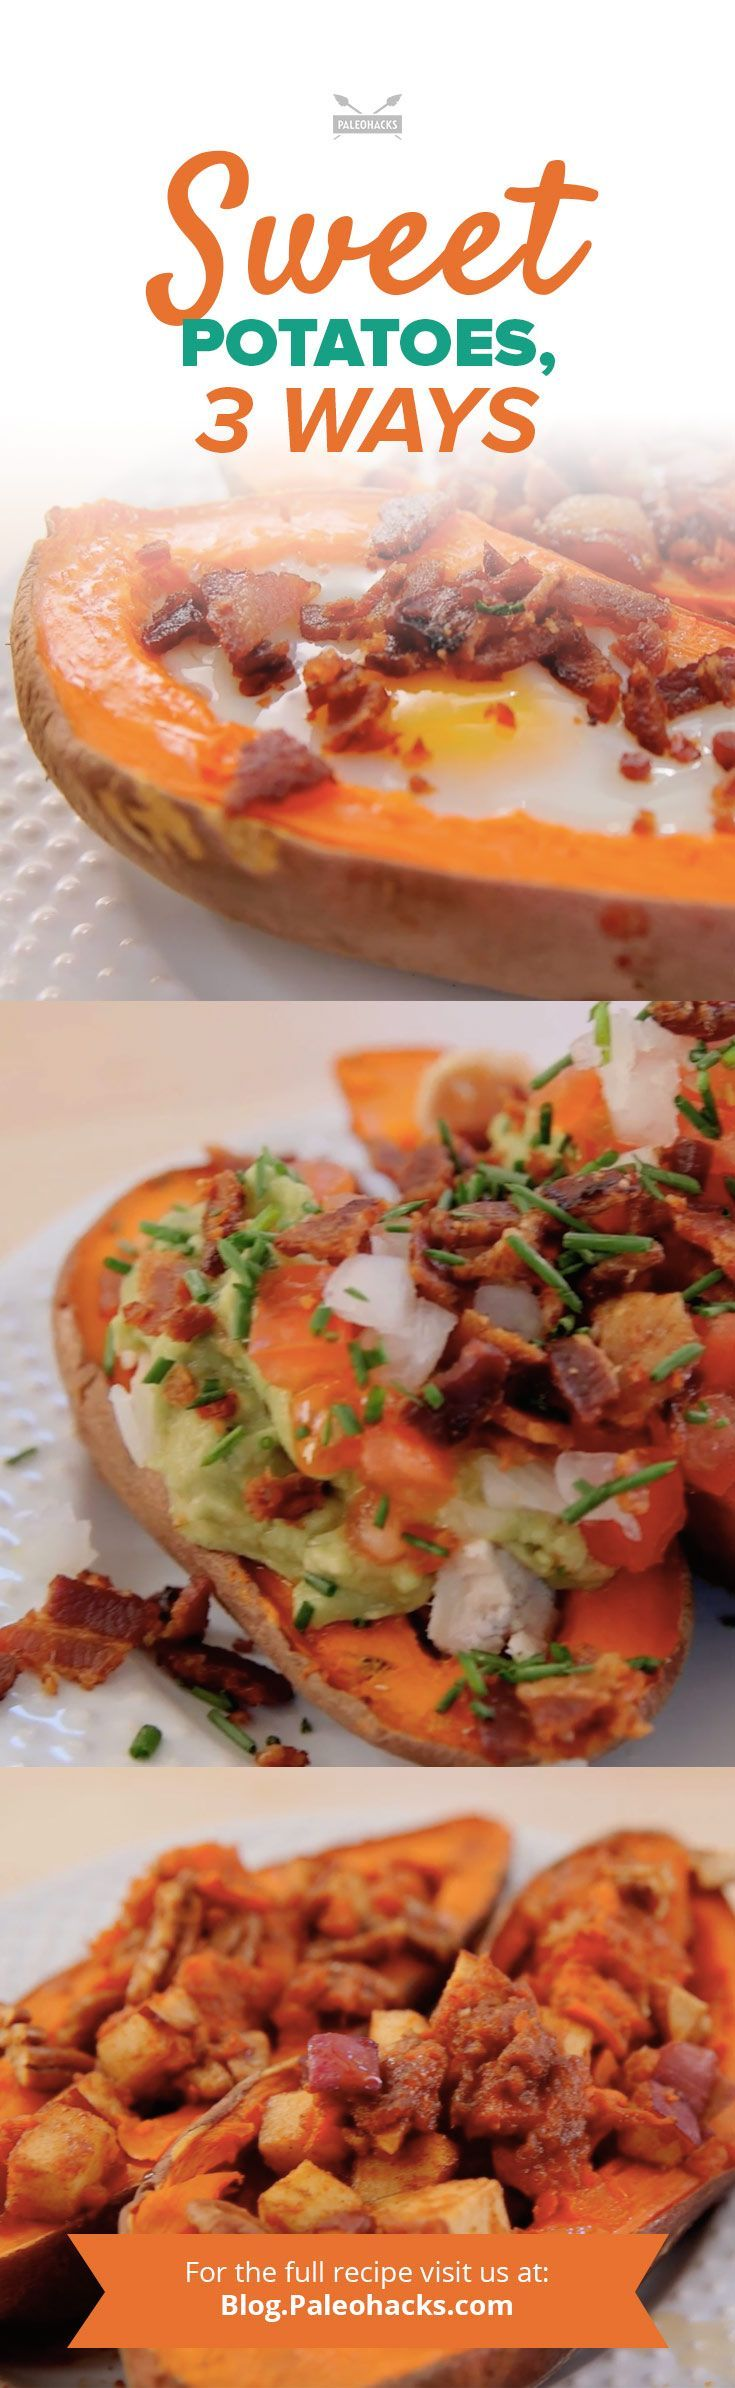 The best thing about sweet potatoes? You can stuff them with all sorts of fun flavor combinations – and use the skins as the bowl. Here are three easy ways to give the old fashioned twice-baked potato a Paleo-inspired makeover. For the full recipes visit us here: http://paleo.co/sweetpotatoesrcp